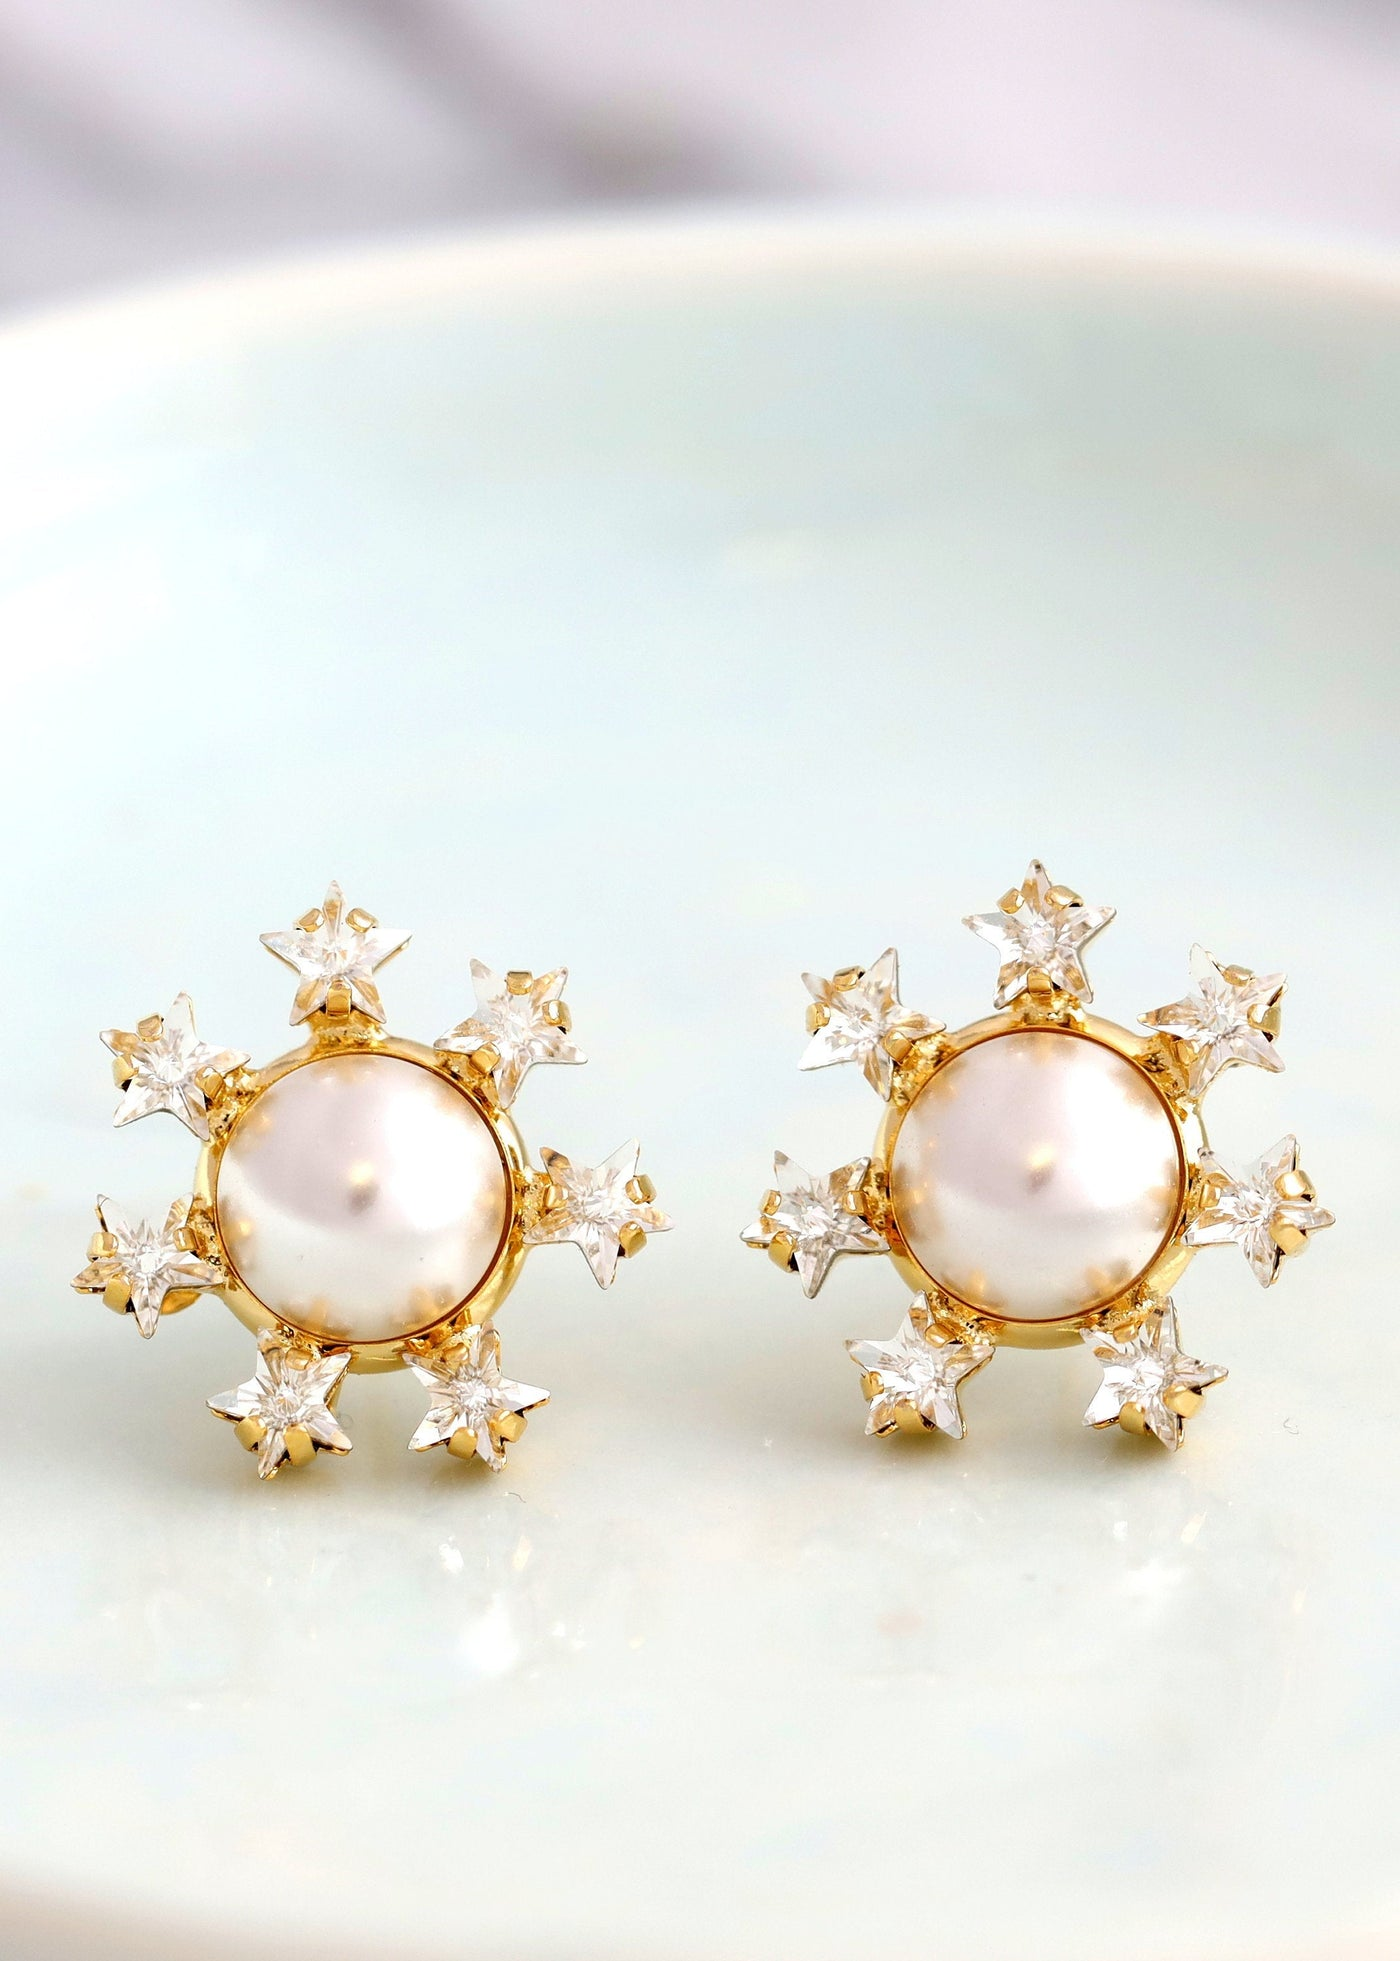 Star Earrings, Pearl Stud Earrings, Bridal Pearls Stud Crystal Earrings, Stars And Celestial Earrings, Bridesmaids Studs, Gold Star Earrings